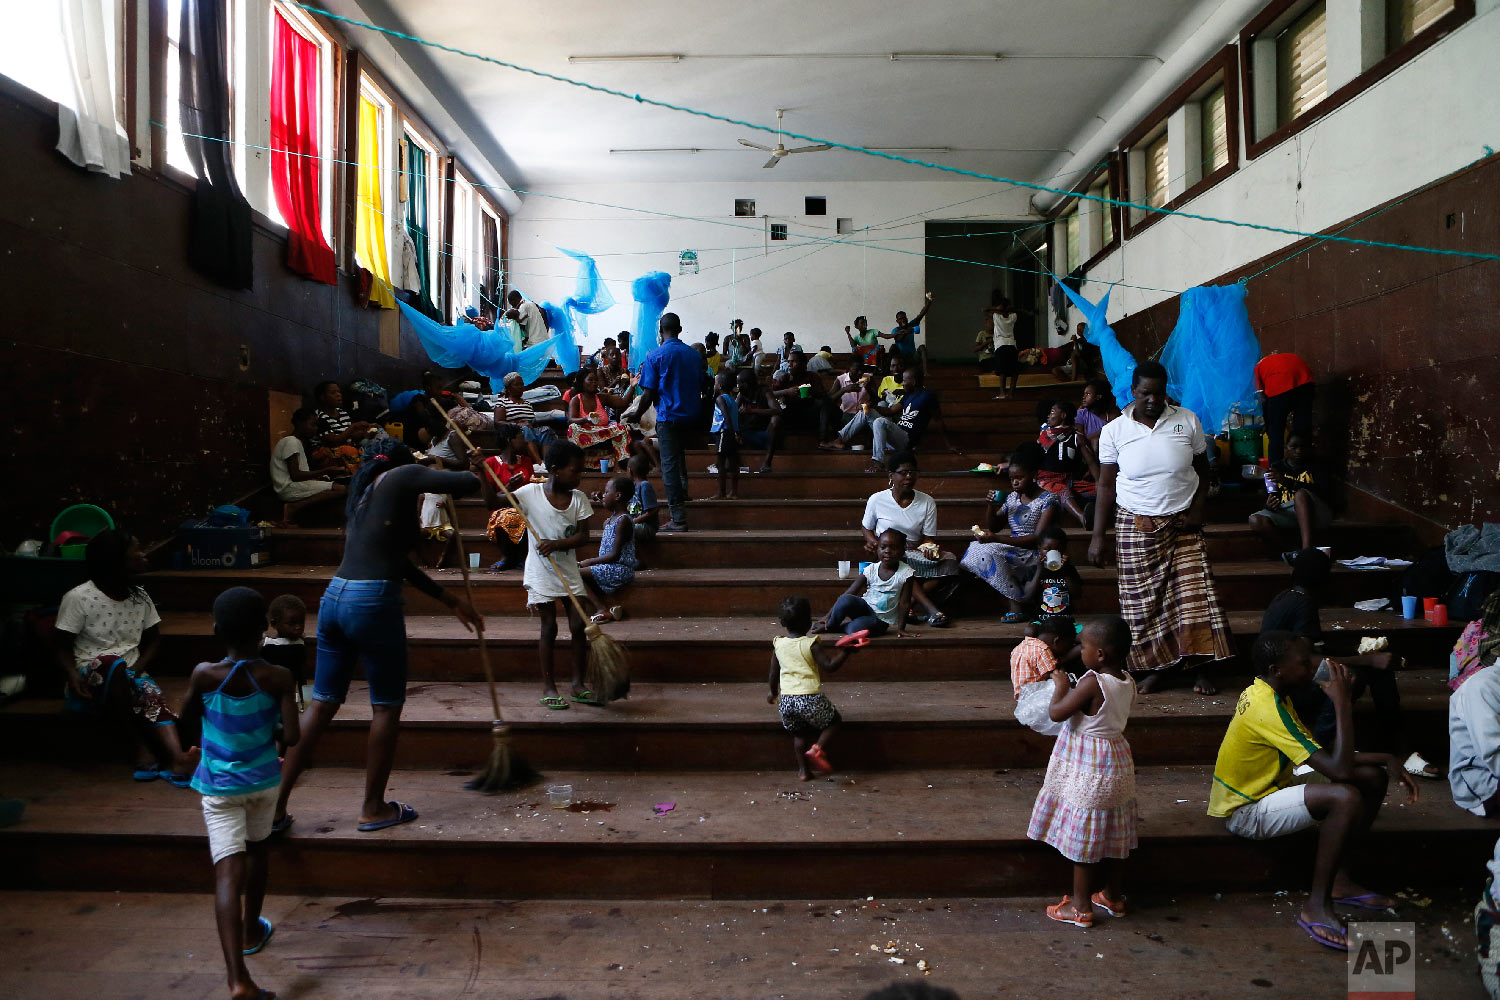 Displaced families victims of Cyclone Idai, eat lunch at the Samora Machel Secondary School which is being used to house victims of the floods in Beira, Mozambique, Sunday March 24, 2019. (AP Photo/Phill Magakoe)